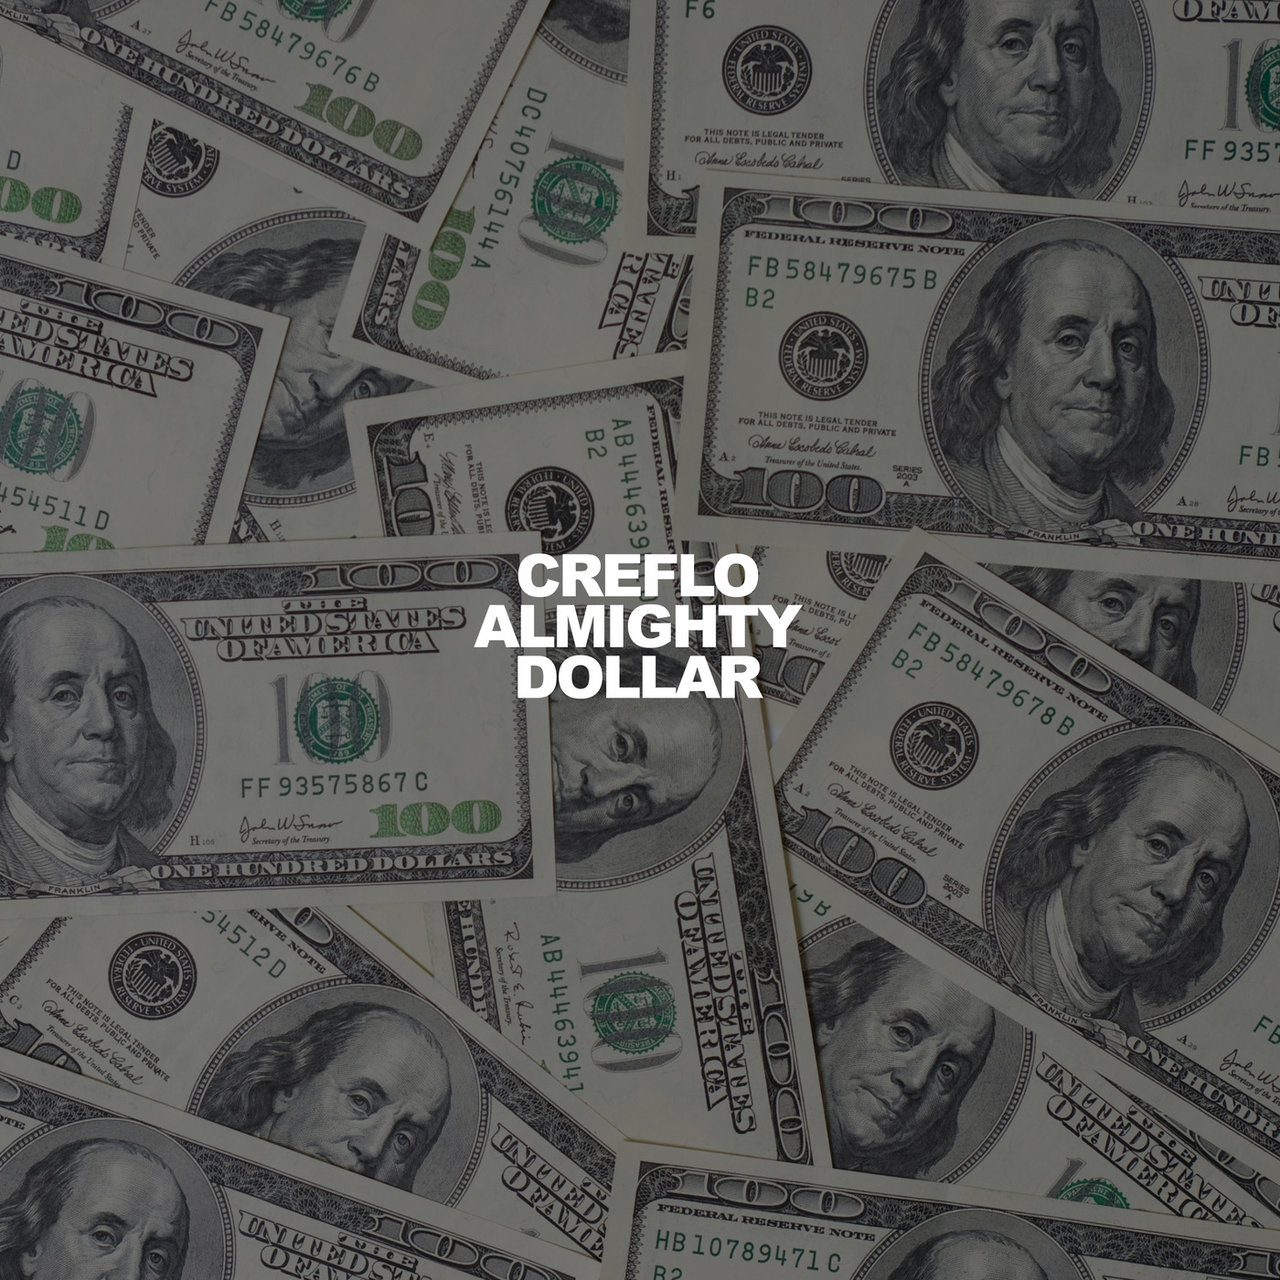 Creflo Almighty Dollar (feat. Twista & ChuchPeople)